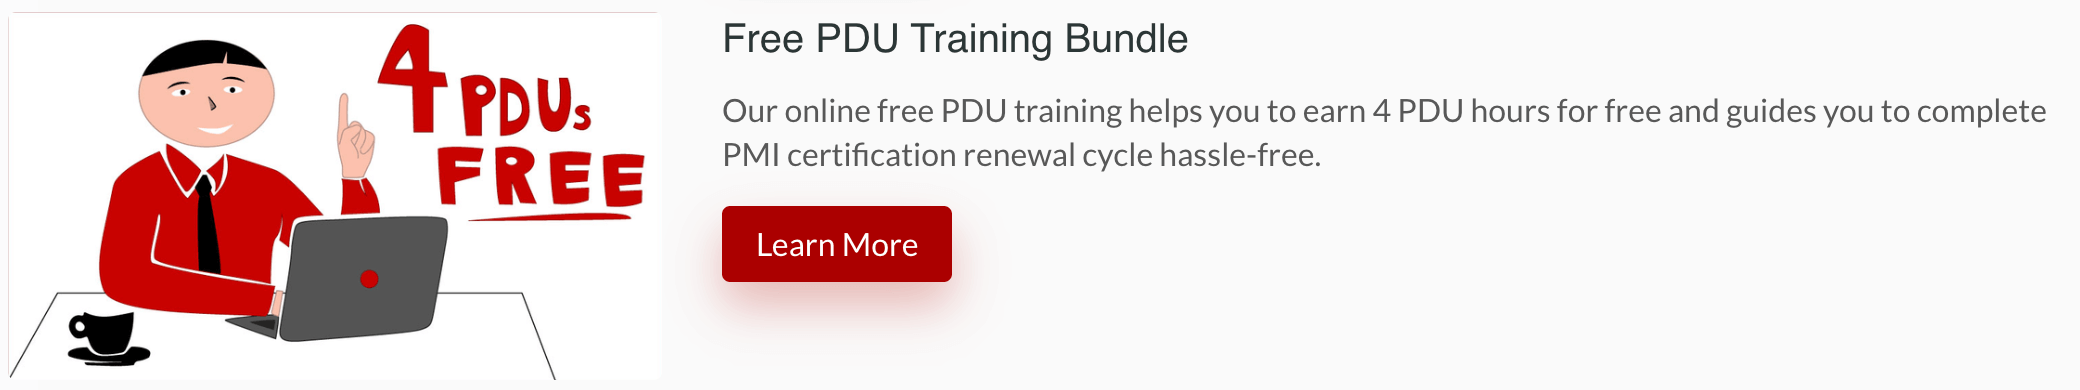 Free-PDU-Training PMP PDU Requirements - Make 100% Sure Your PDUs Are Valid!